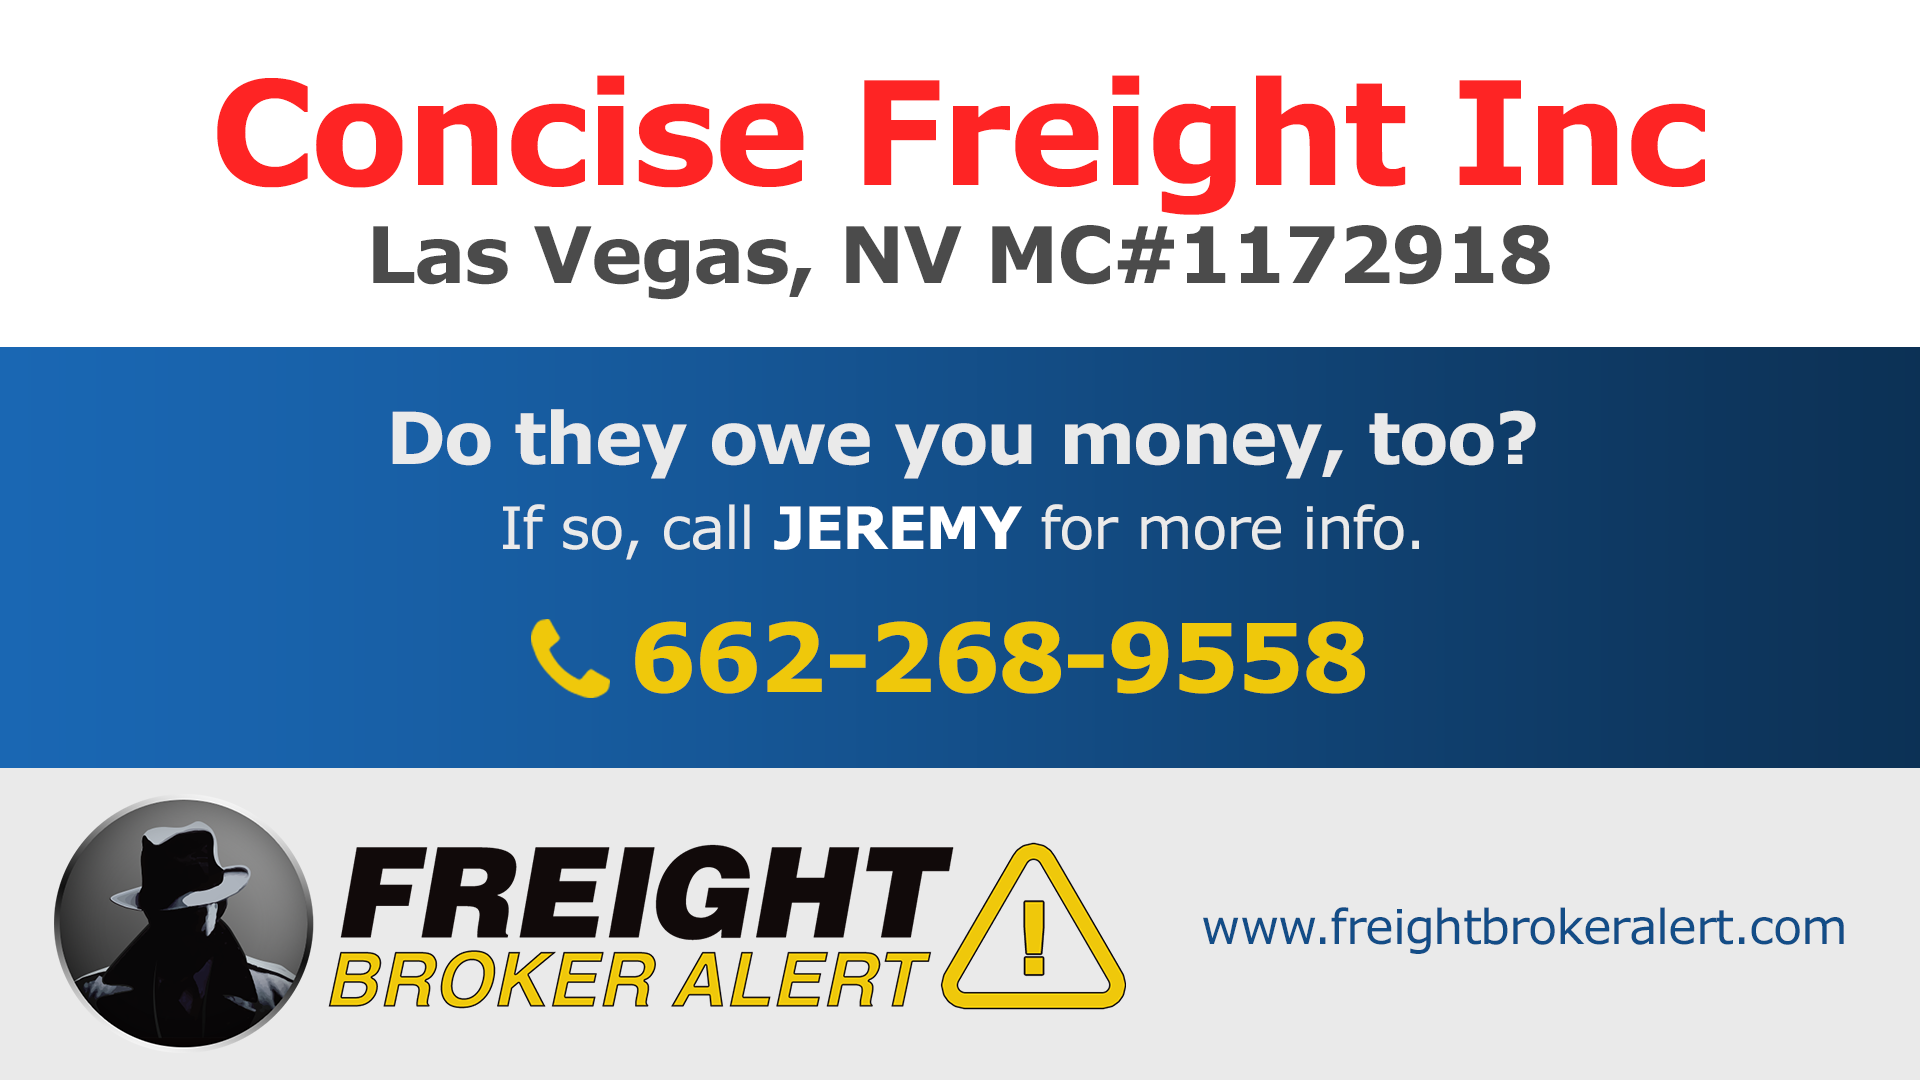 Concise Freight Inc Nevada